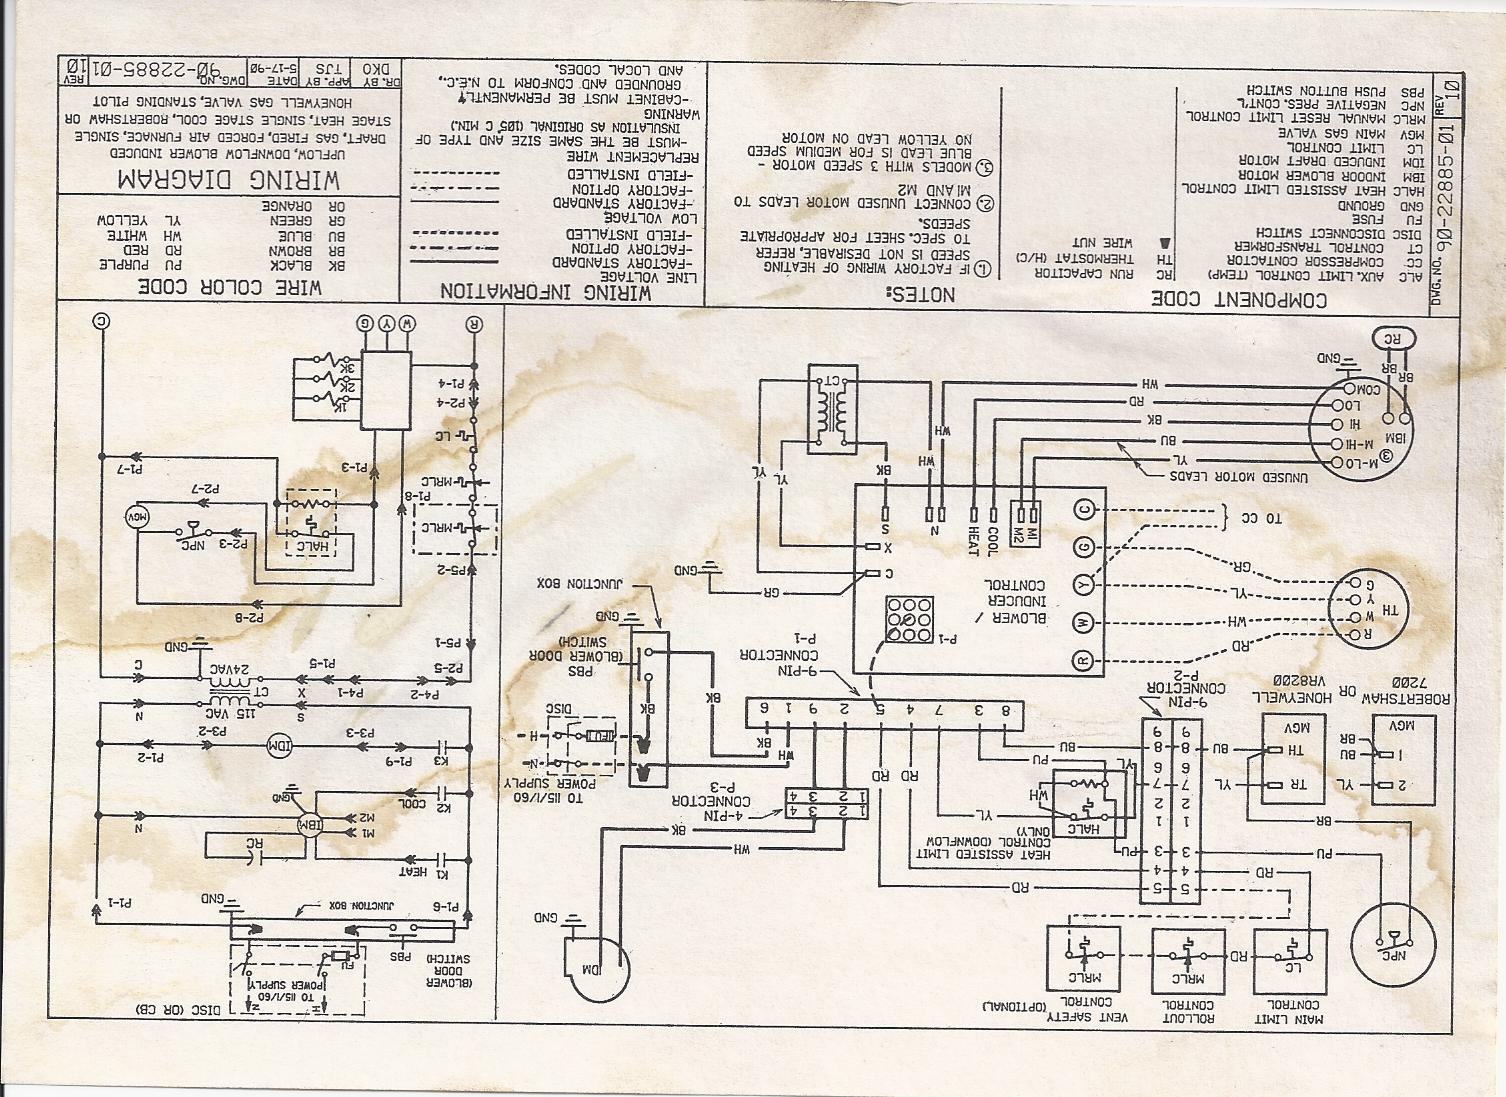 Rudd Ac Wiring Diagram Nice Place To Get Home Thermostat My Ruud Indoor Blower Runs All The Time I Have Been Told Air Conditioner Diagrams